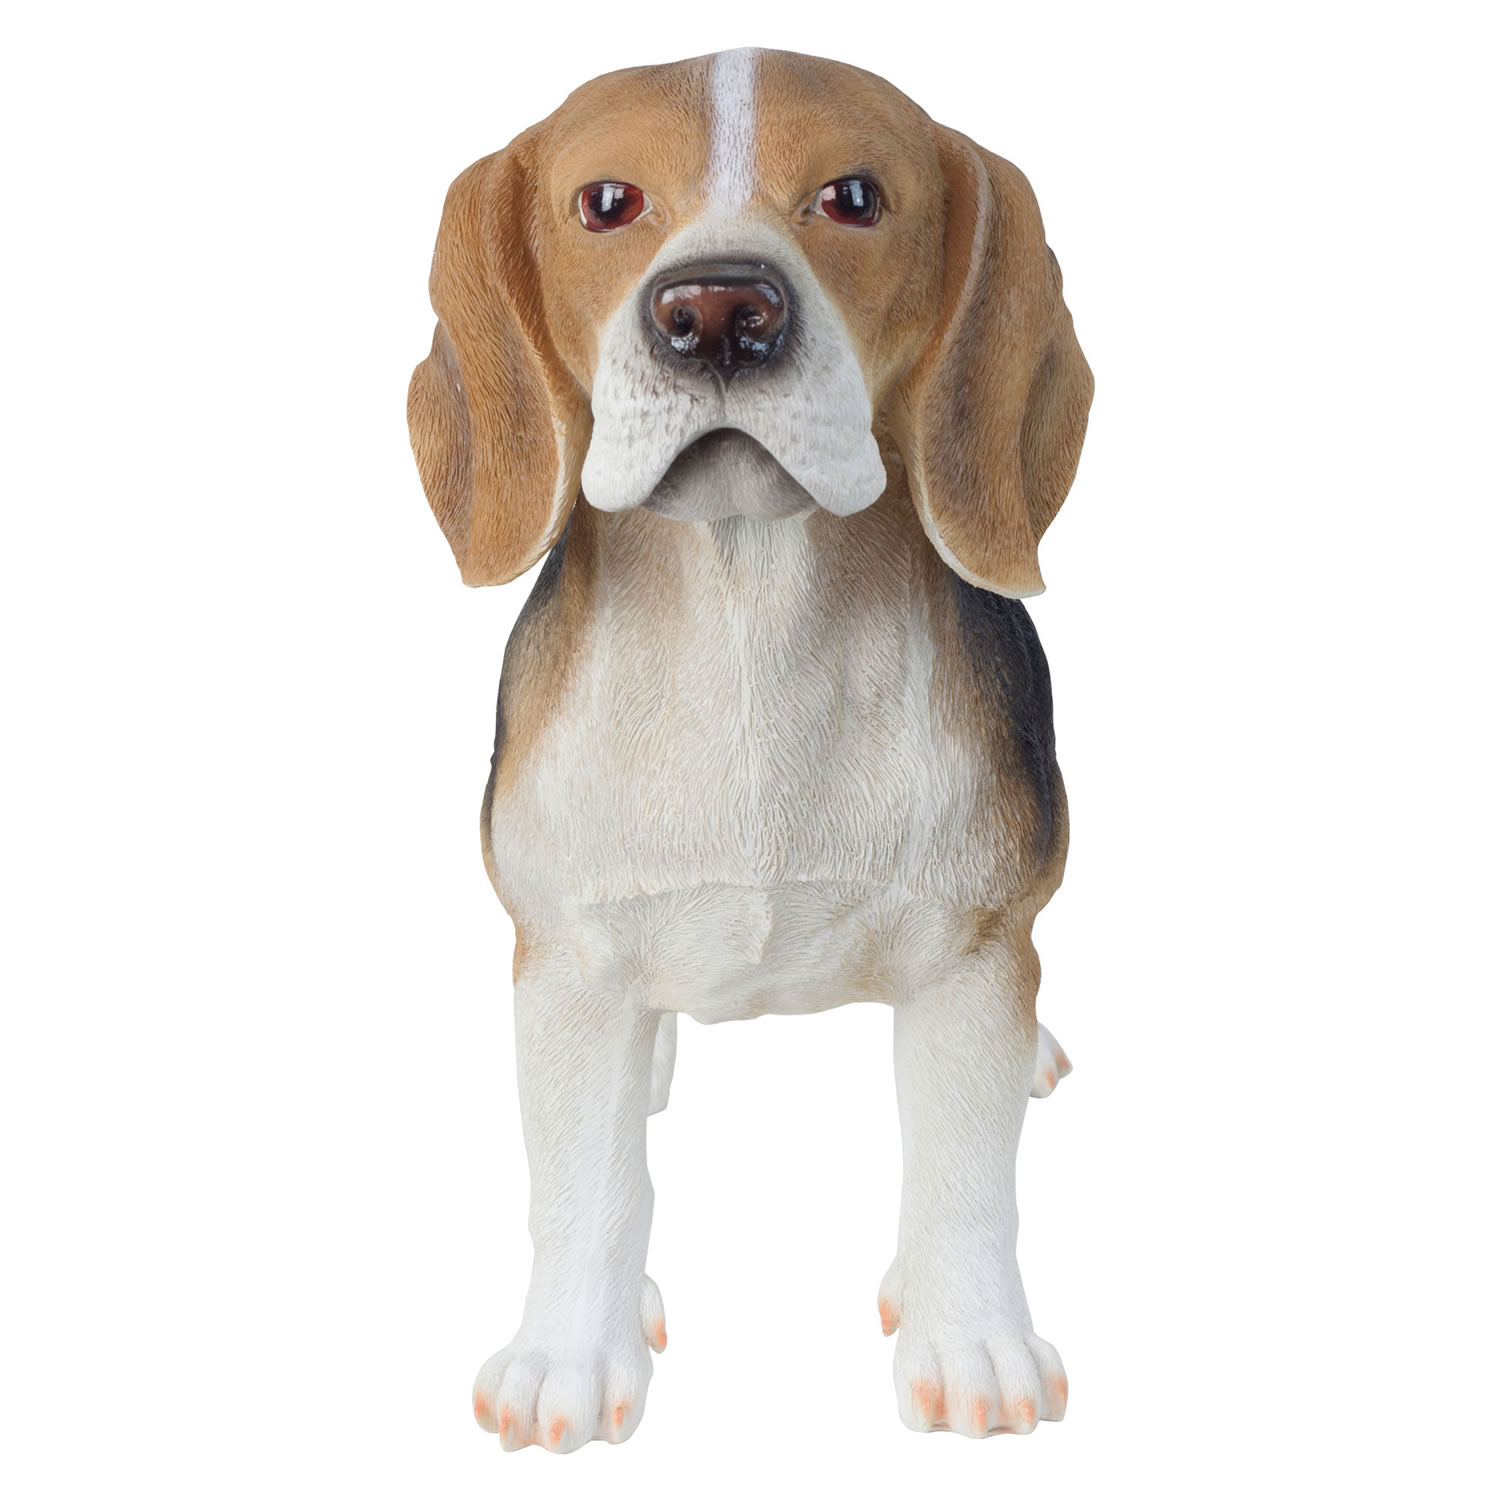 Small Image Of Large Realistic Standing Beagle Dog Polyresin Garden Ornament  Jpg 1500x1500 Beagle Dog Statues